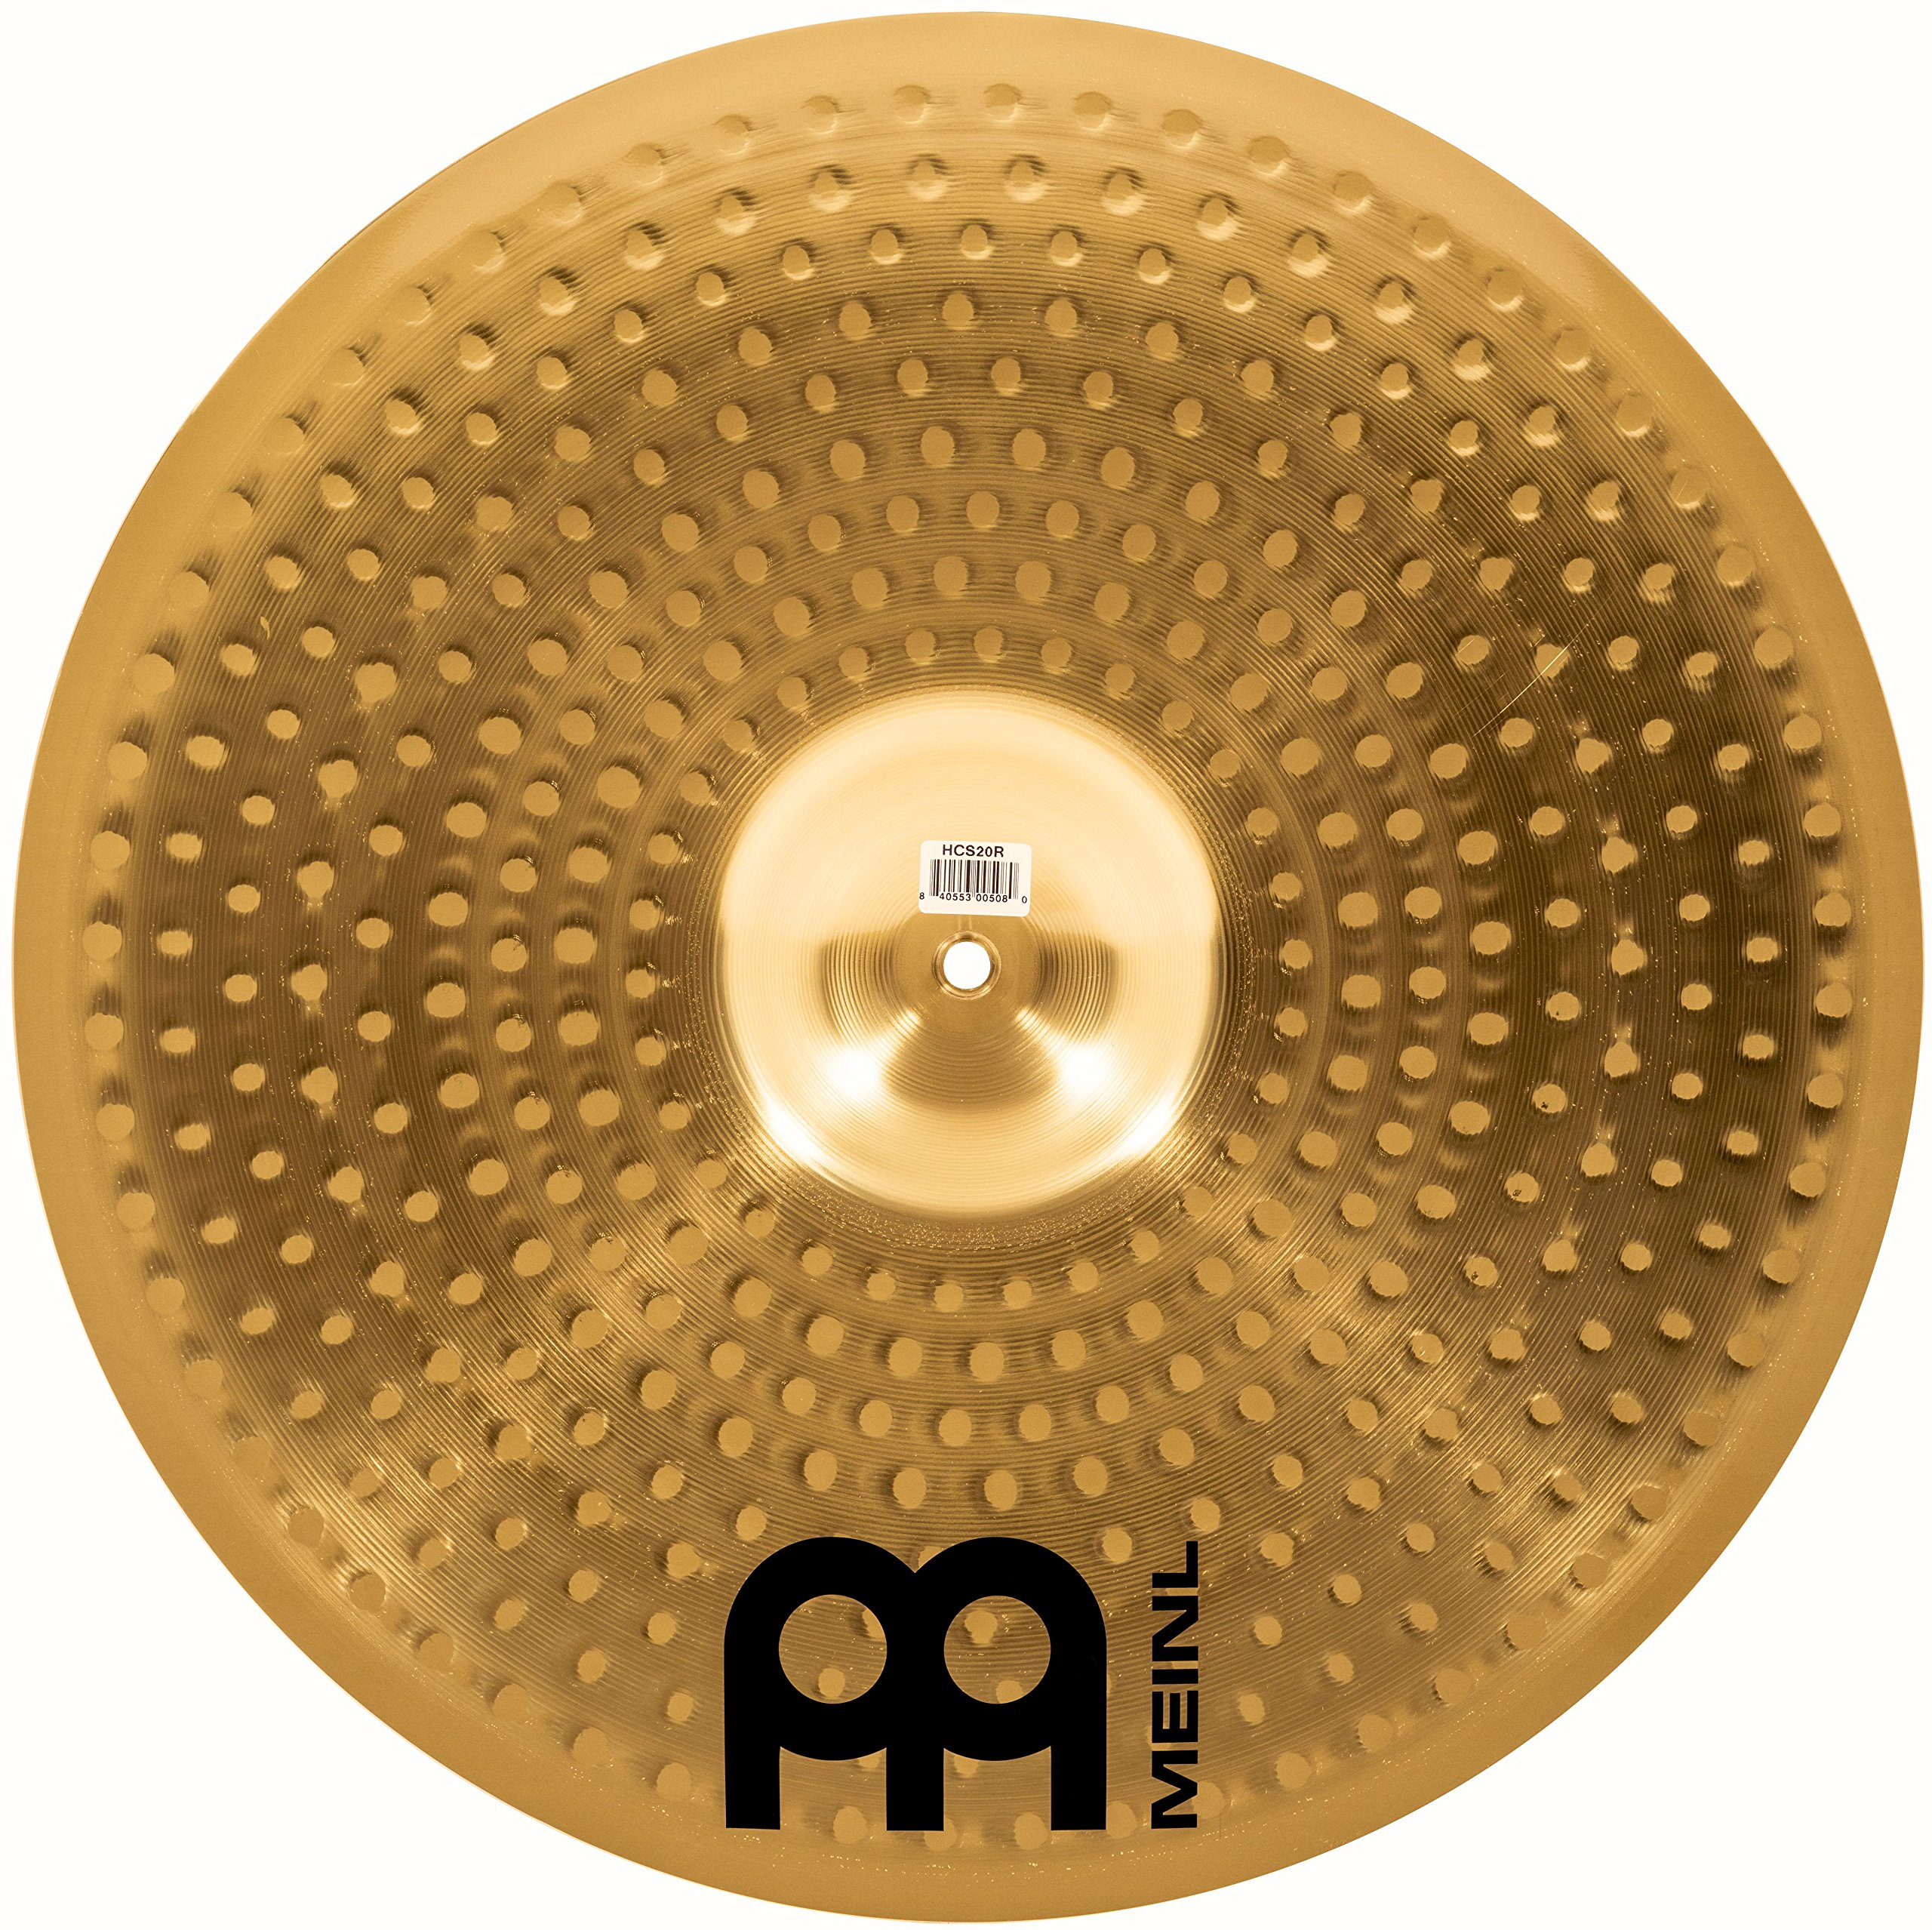 Meinl Cymbals HCS20R 20'' HCS Brass Ride Cymbal for Drum Set (VIDEO) by Meinl Cymbals (Image #2)